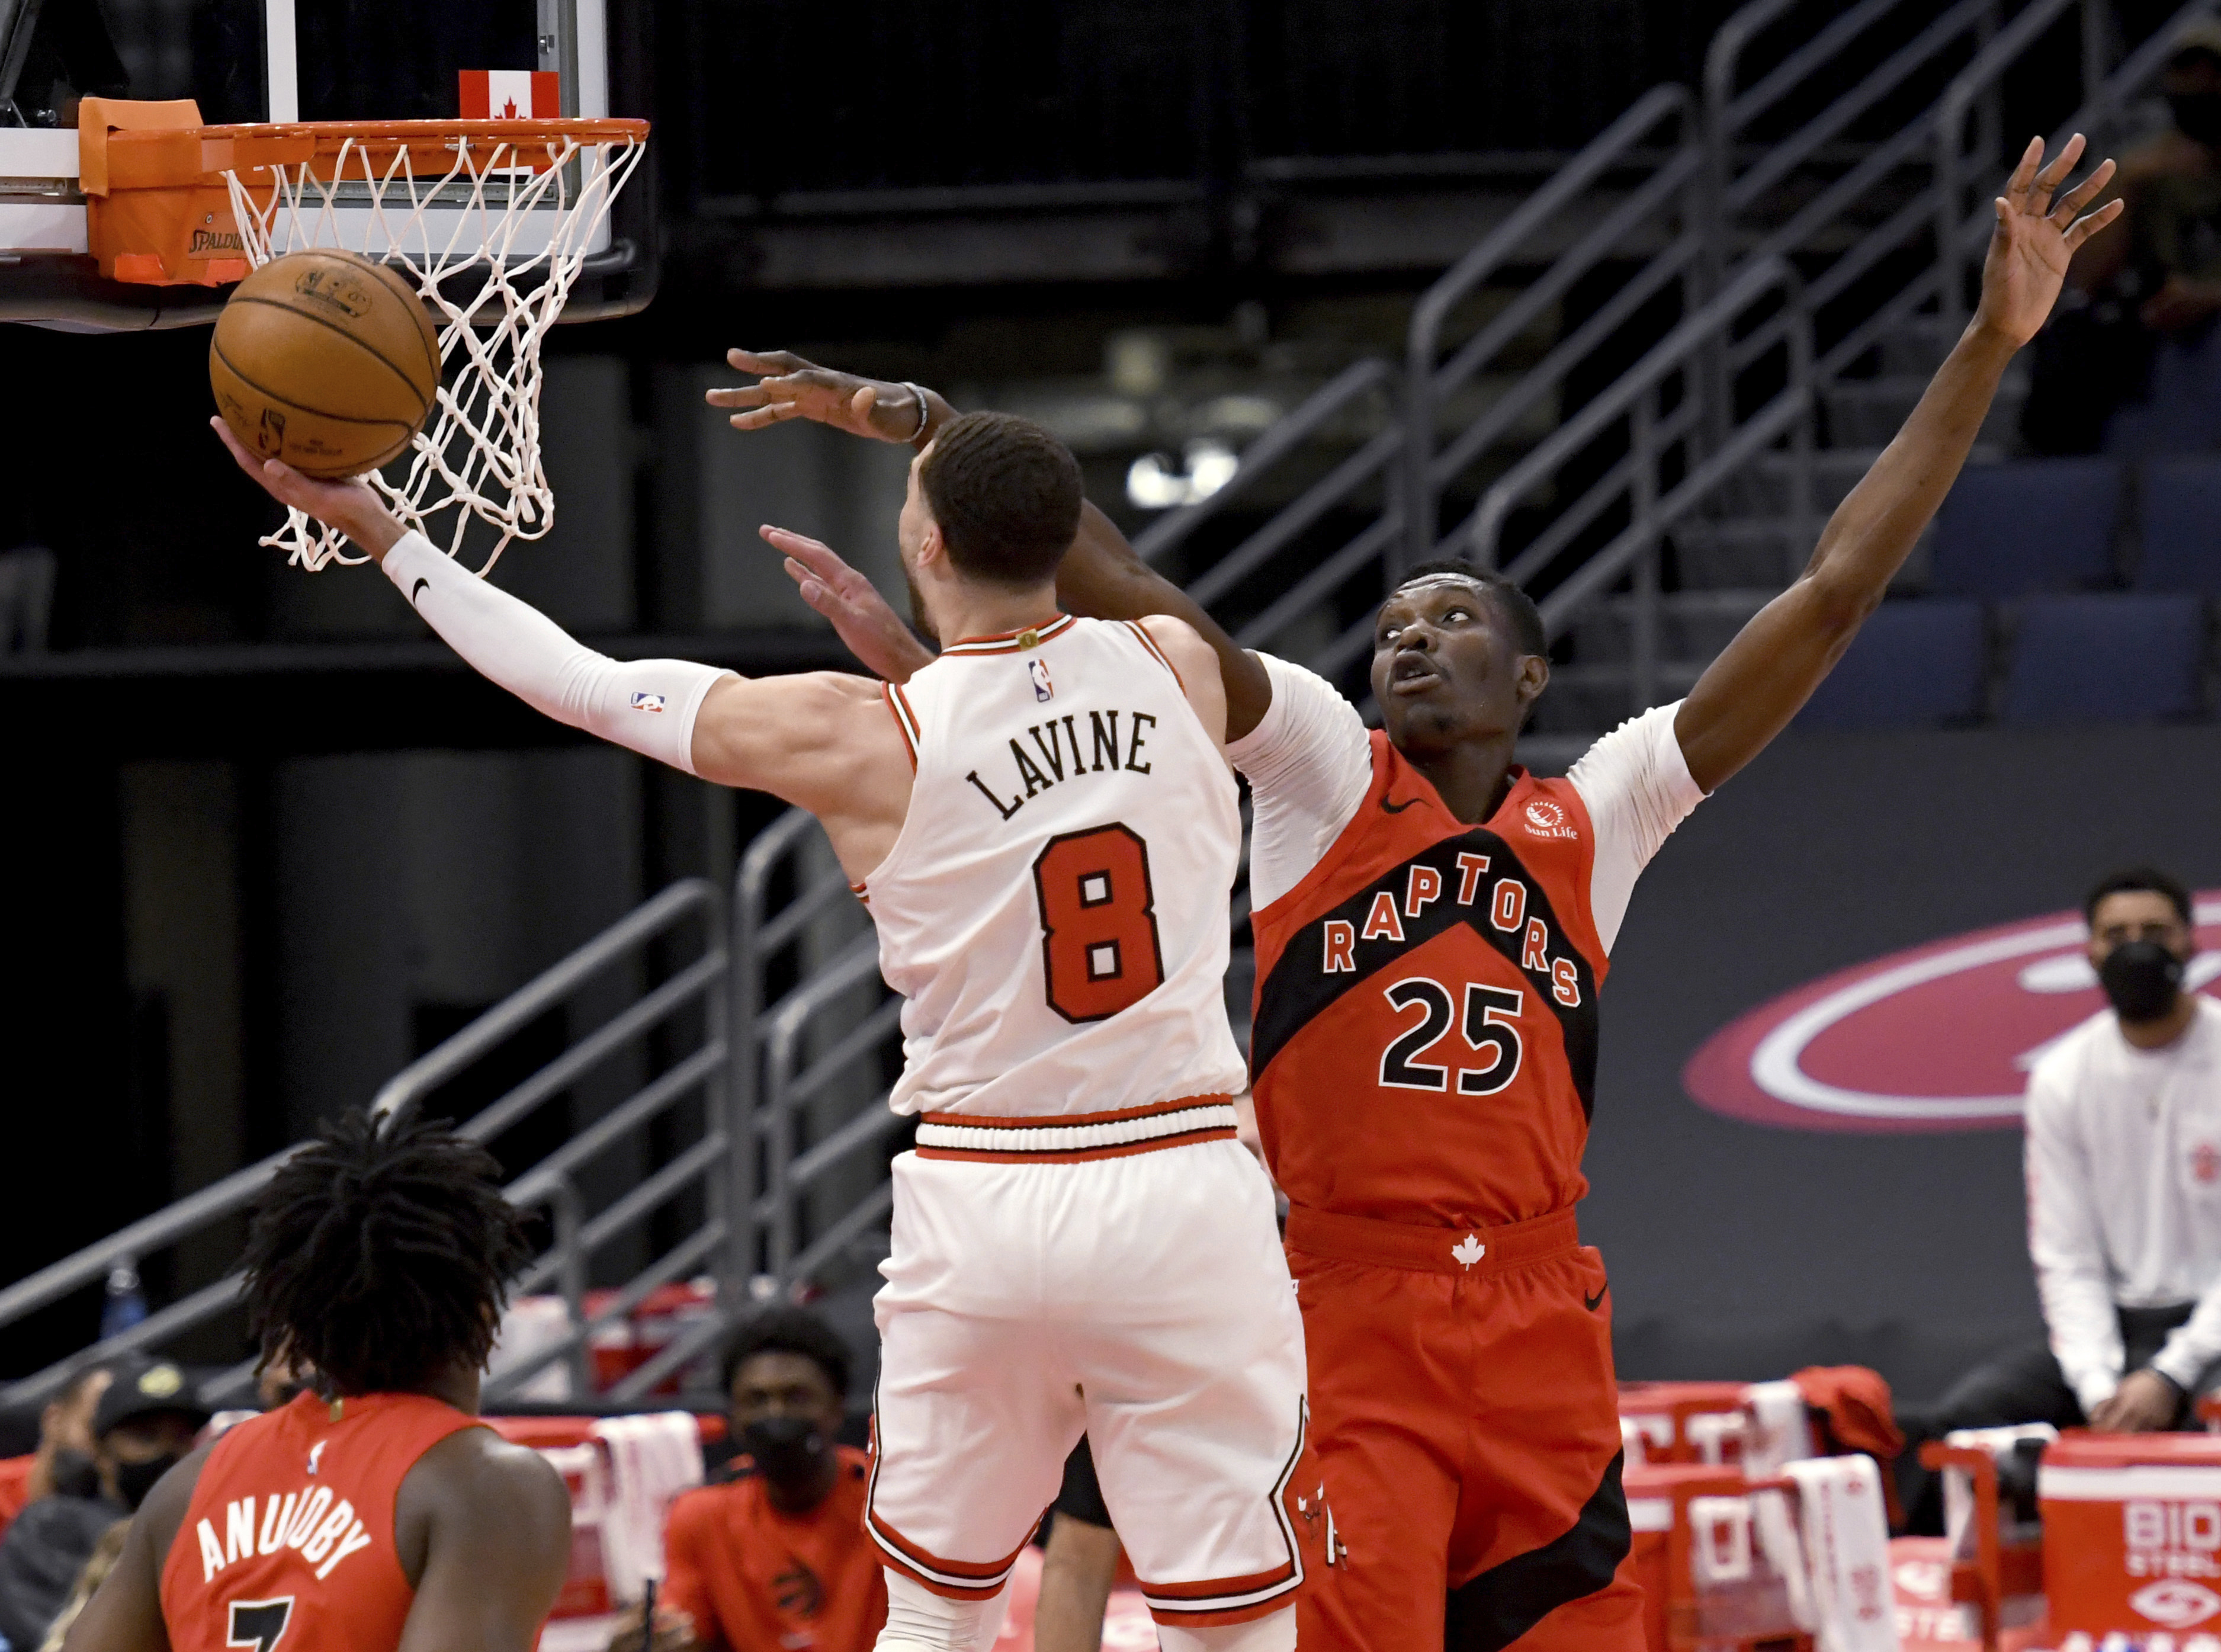 Bulls guard Zach LaVine shoots against Raptors forward Chris Boucher during the first half of Thursday's game.